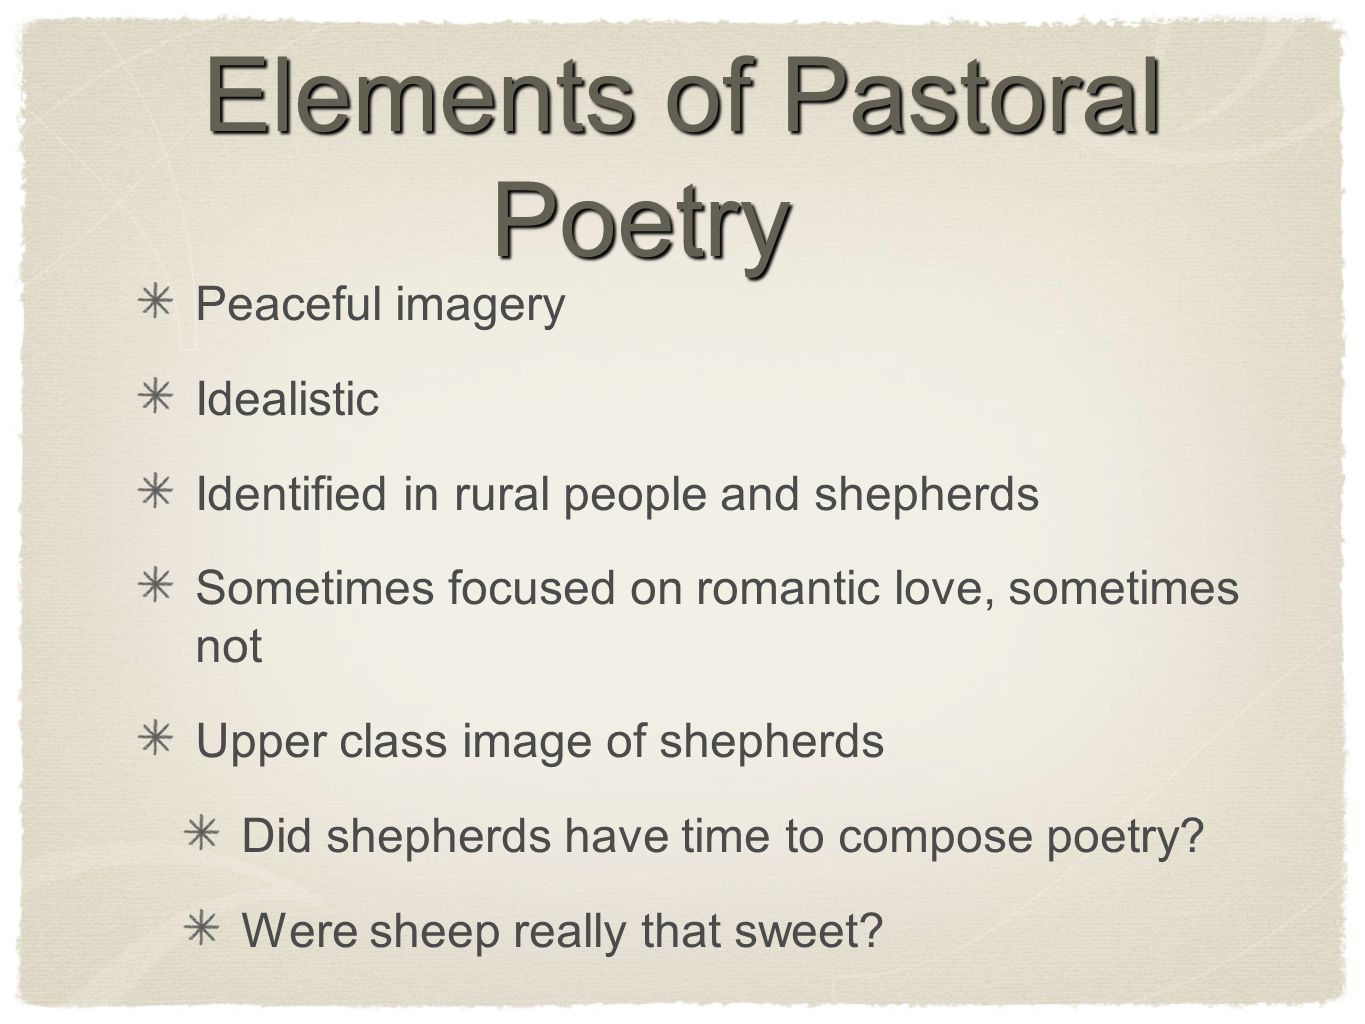 Elements of Pastoral Poetry